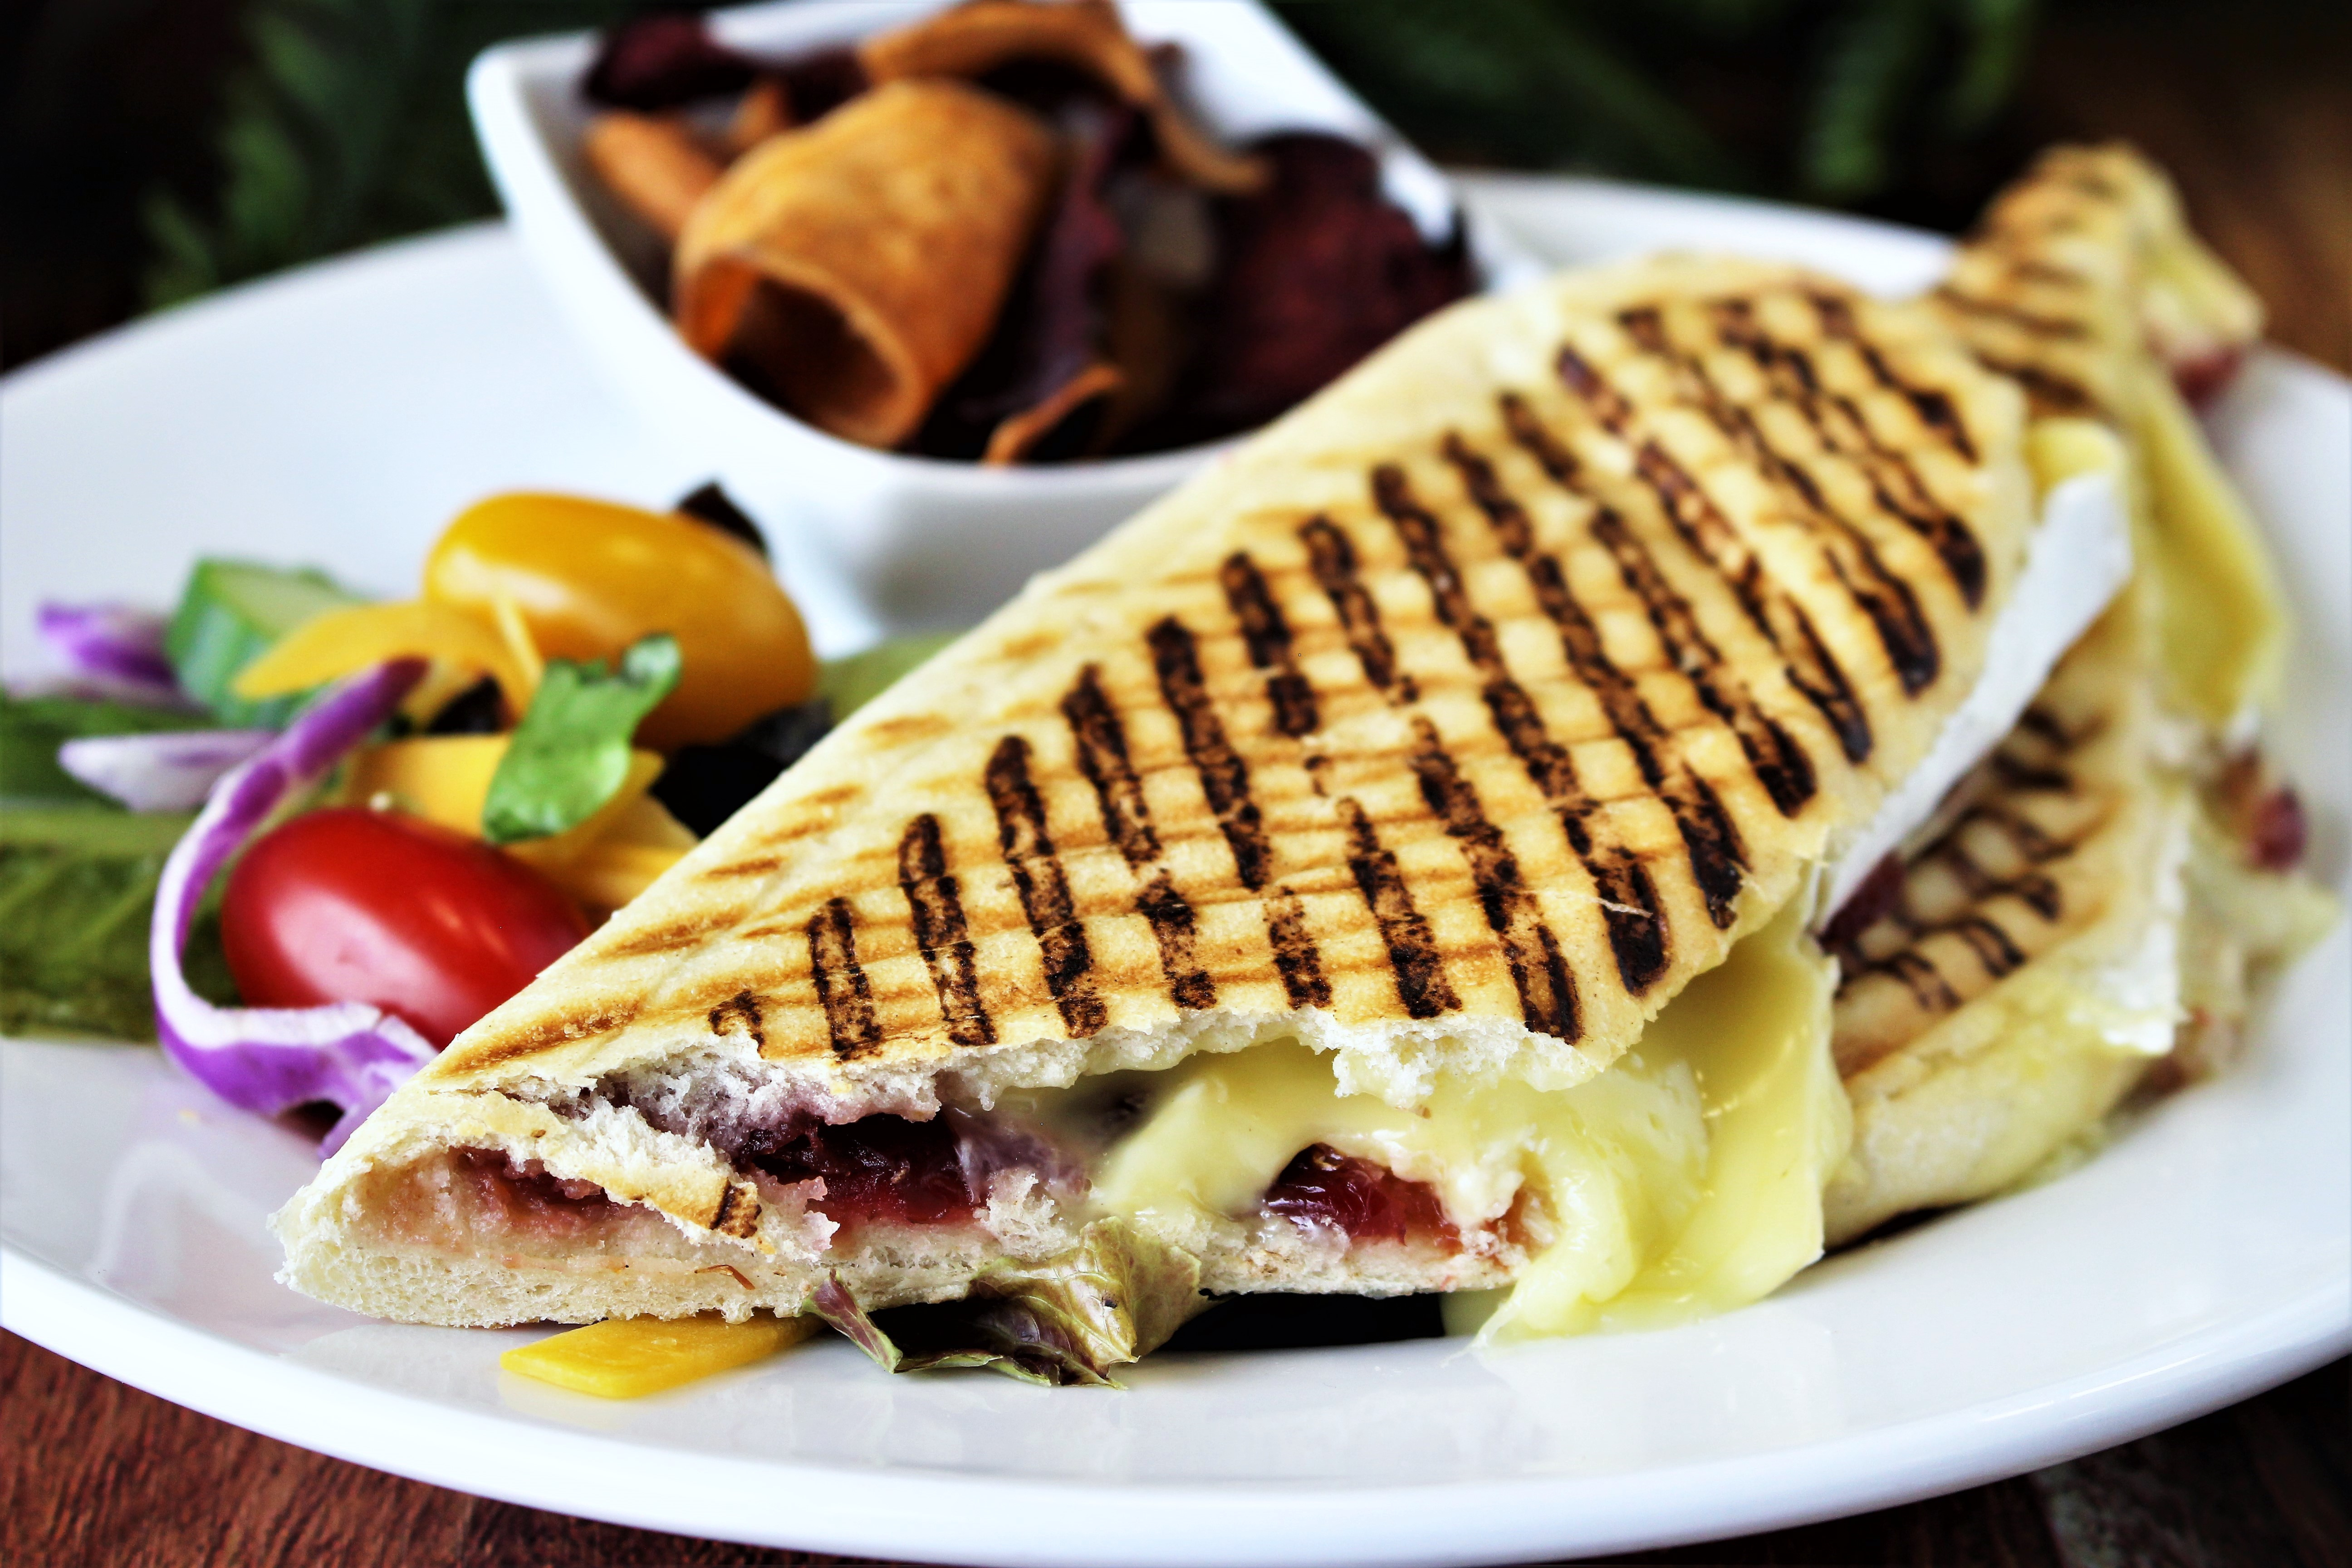 pannini brie and cranberry